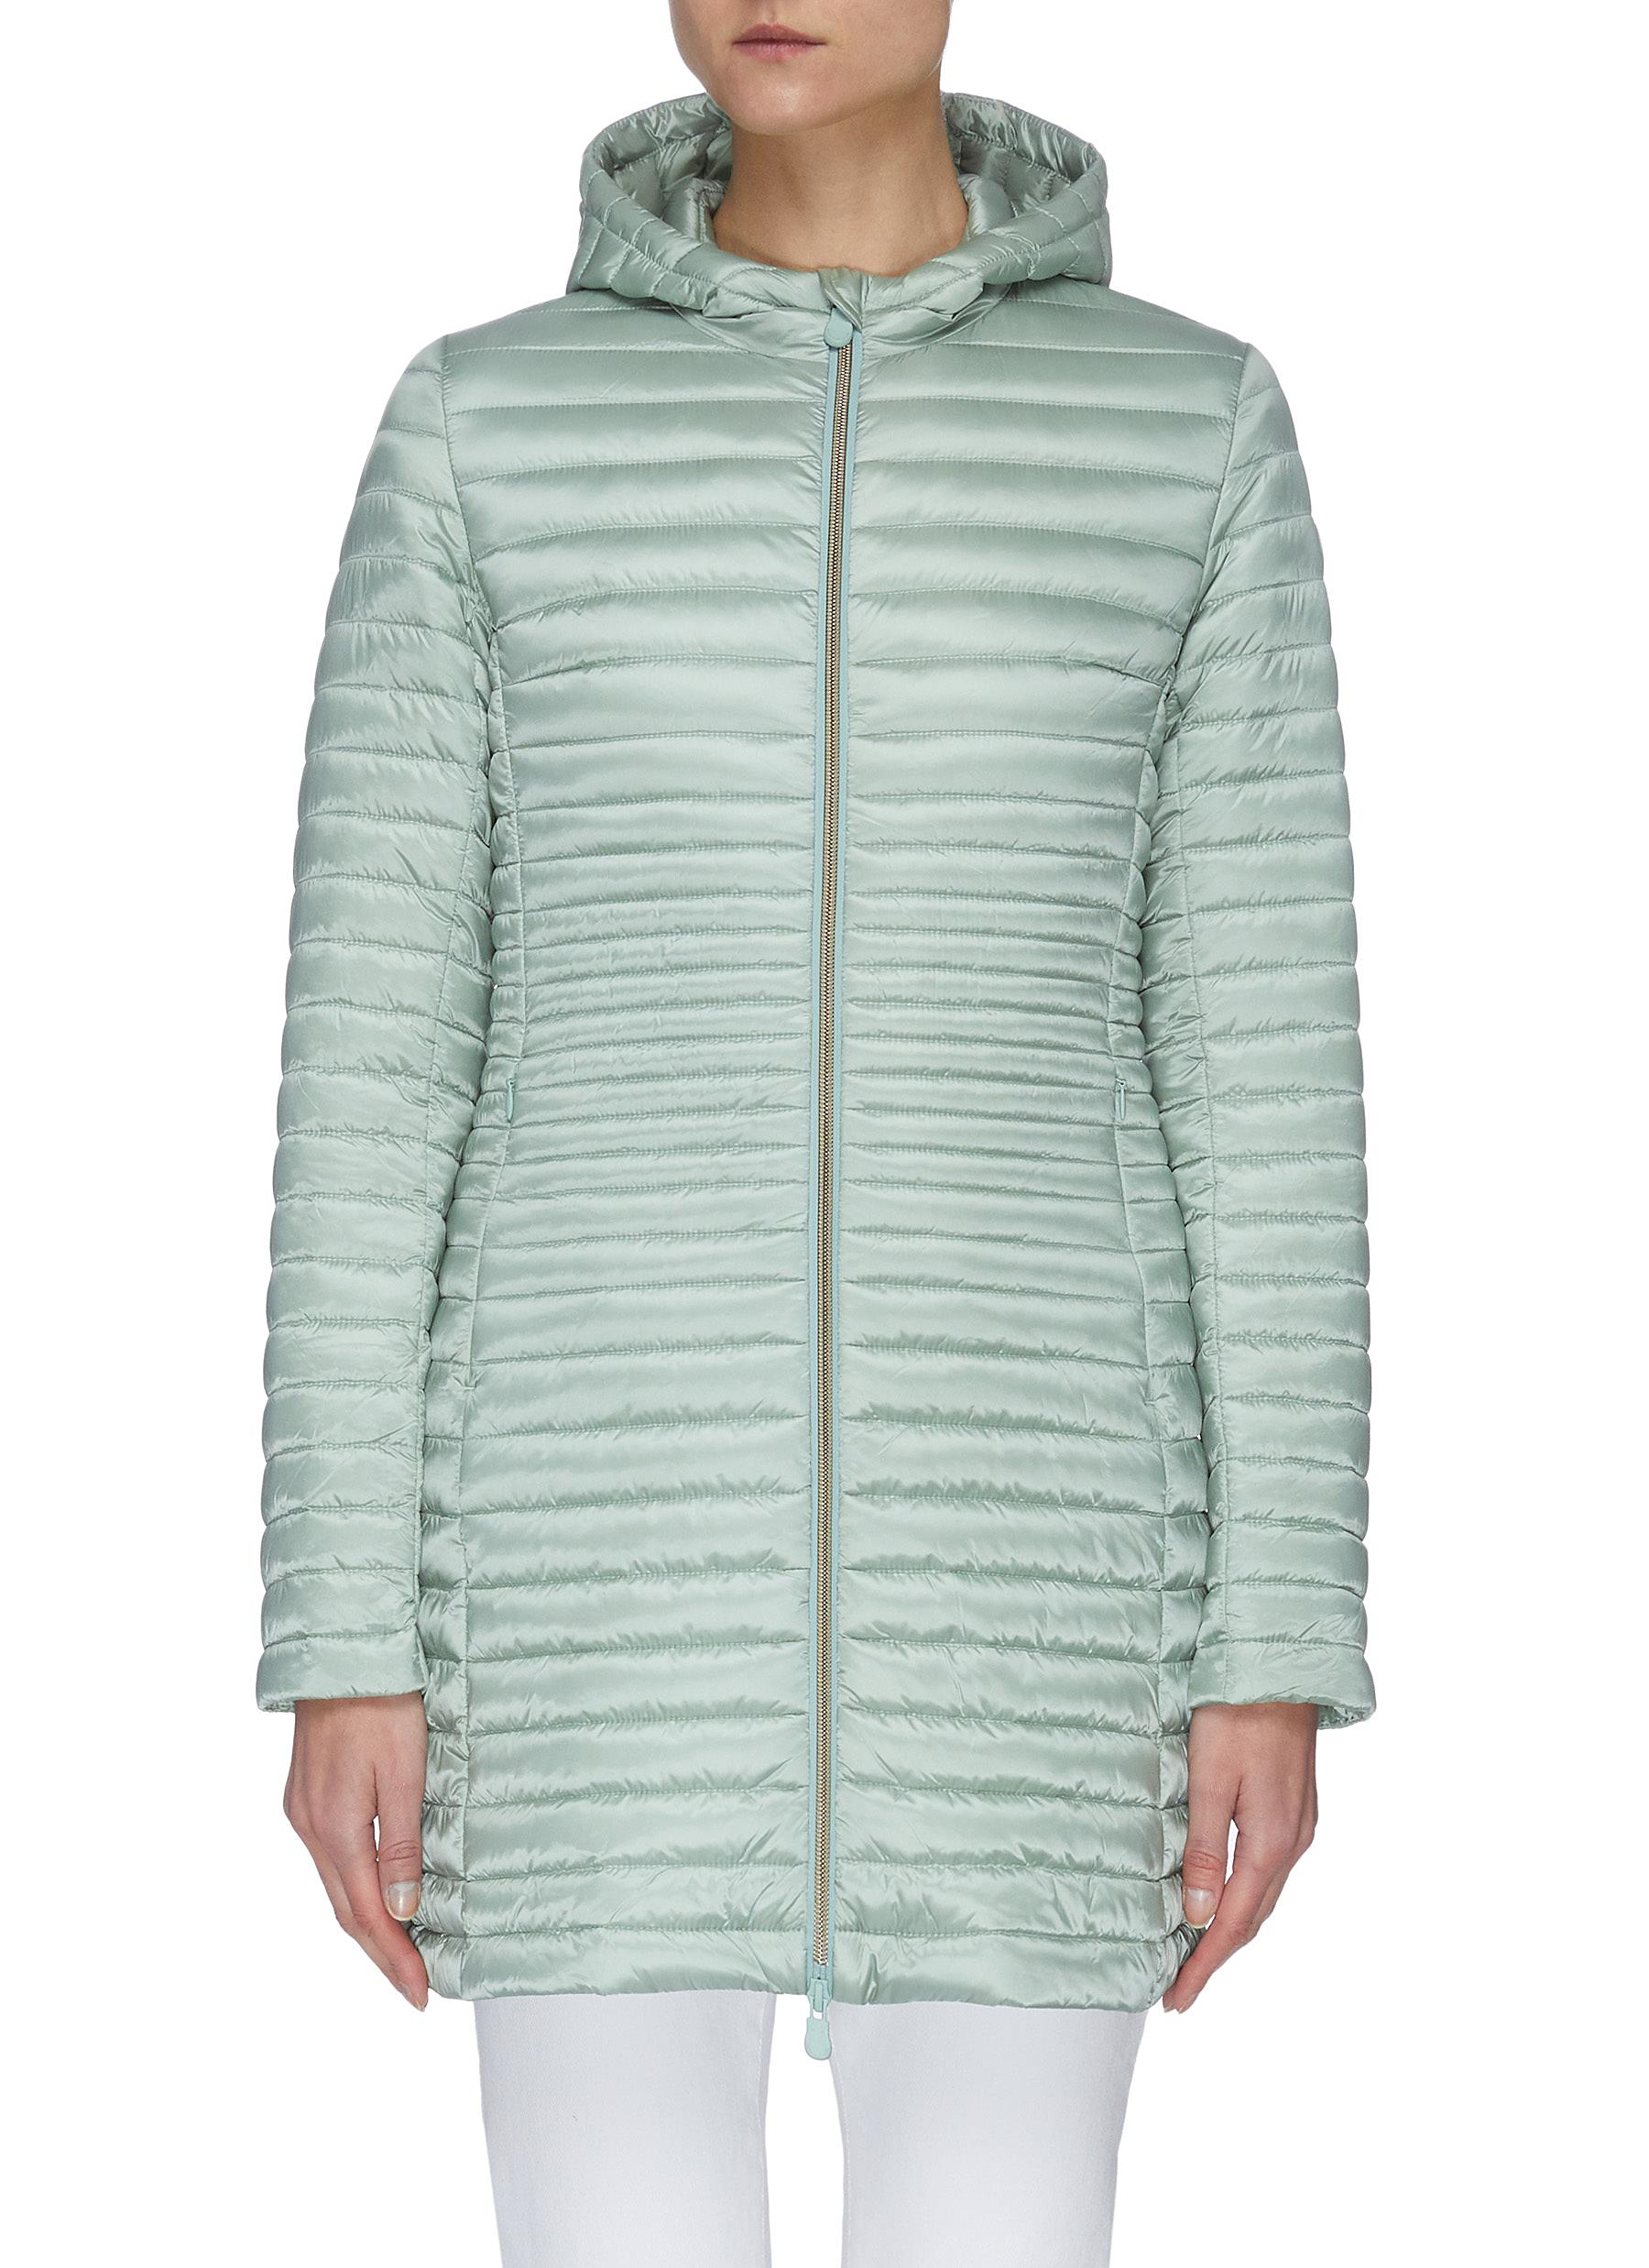 Buy Save The Duck Jackets 'Irisx' hooded nylon down jacket